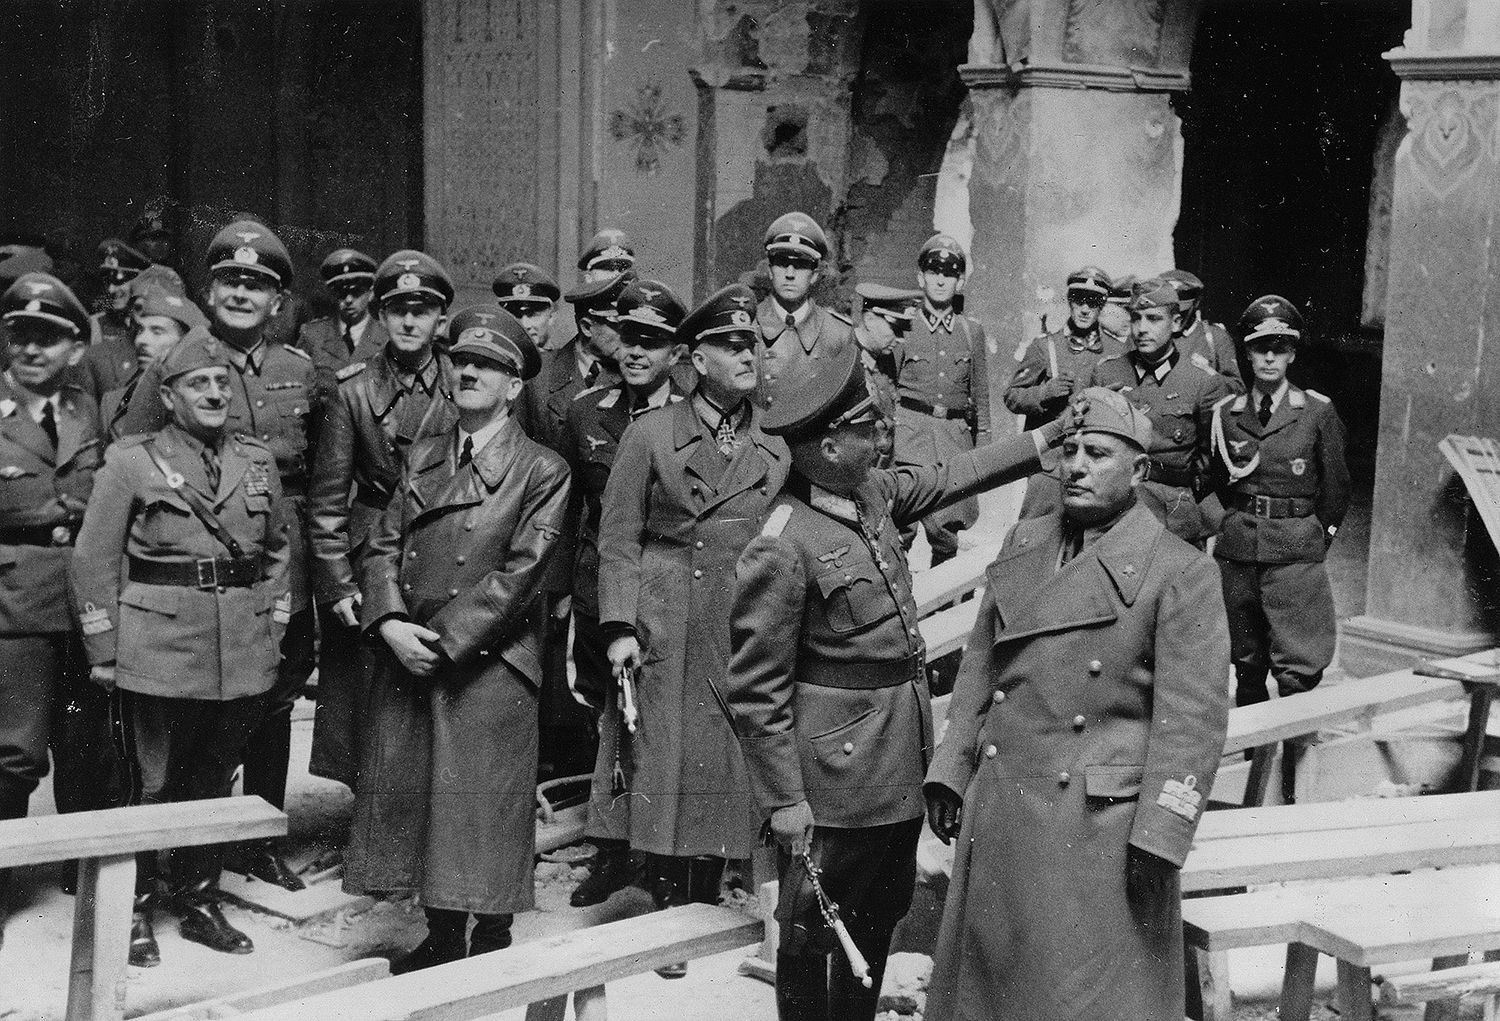 Hitler And Mussolini With Their Retinues Visit What Looks Like A Ruined Church In Brest 1941 Mussolini Is Visibly Disinterested In Big E S History Pinte